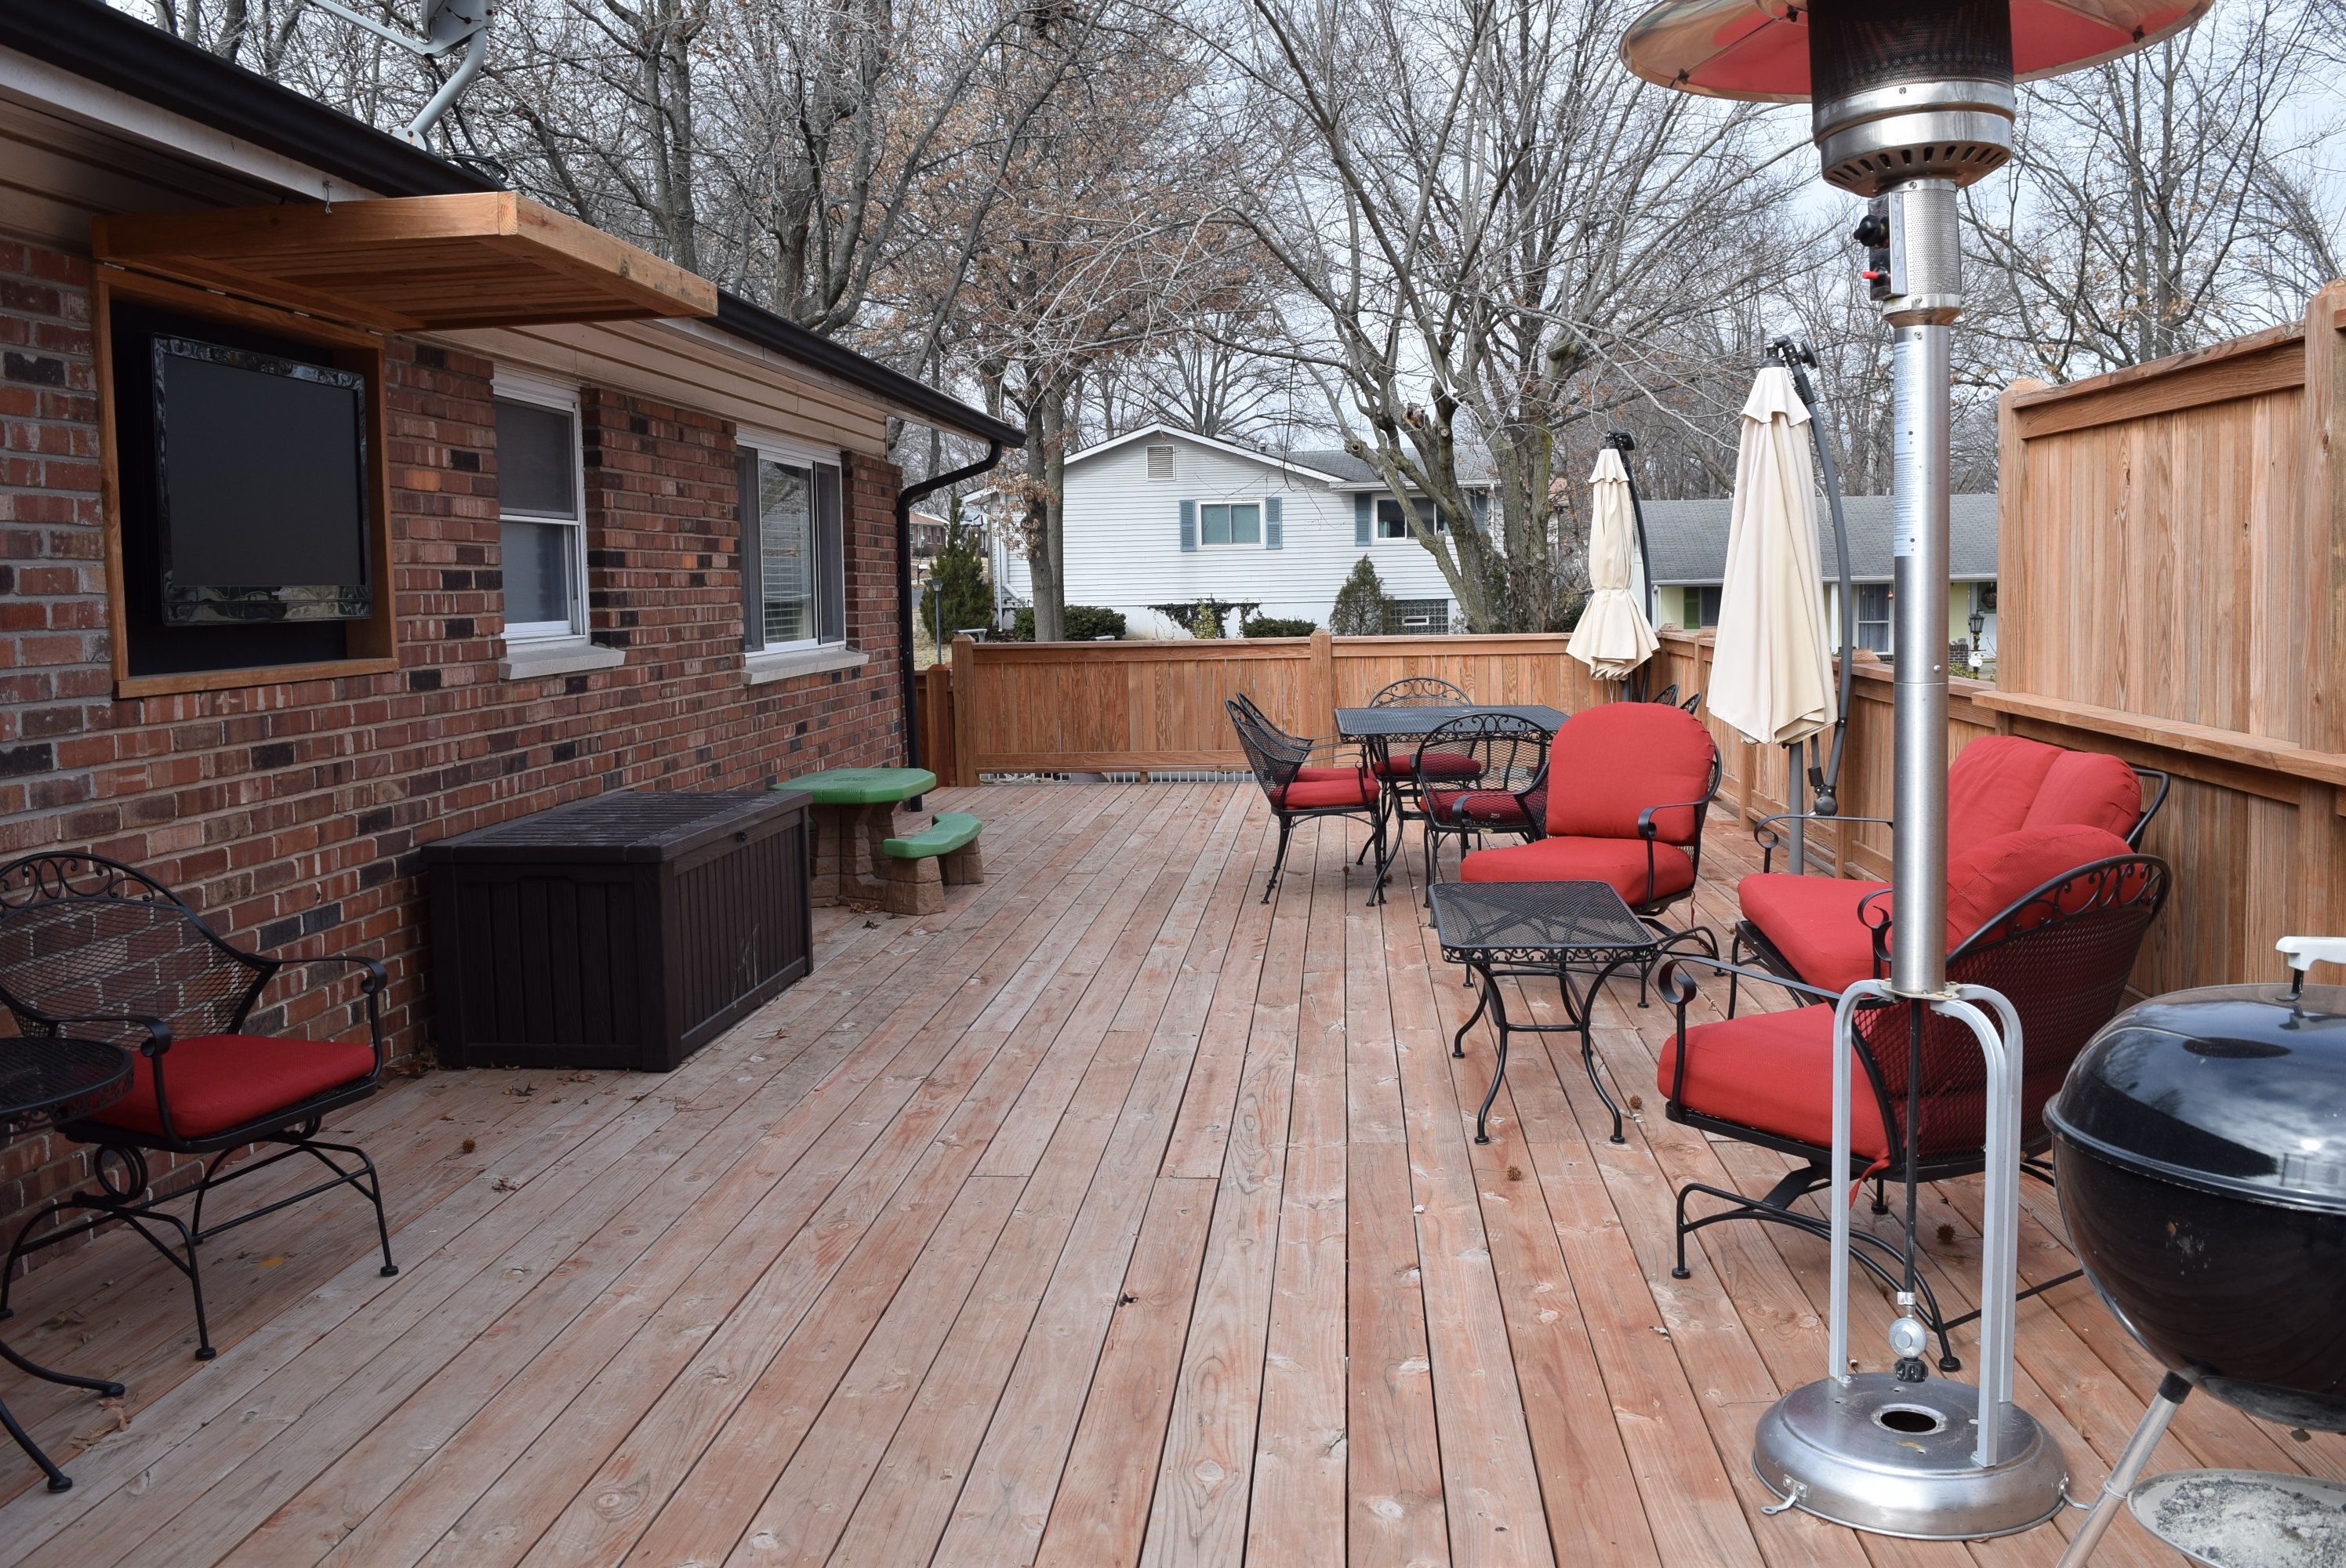 Fantastic deck for entertaining (16'x44') with privacy area and built-in TV nook.